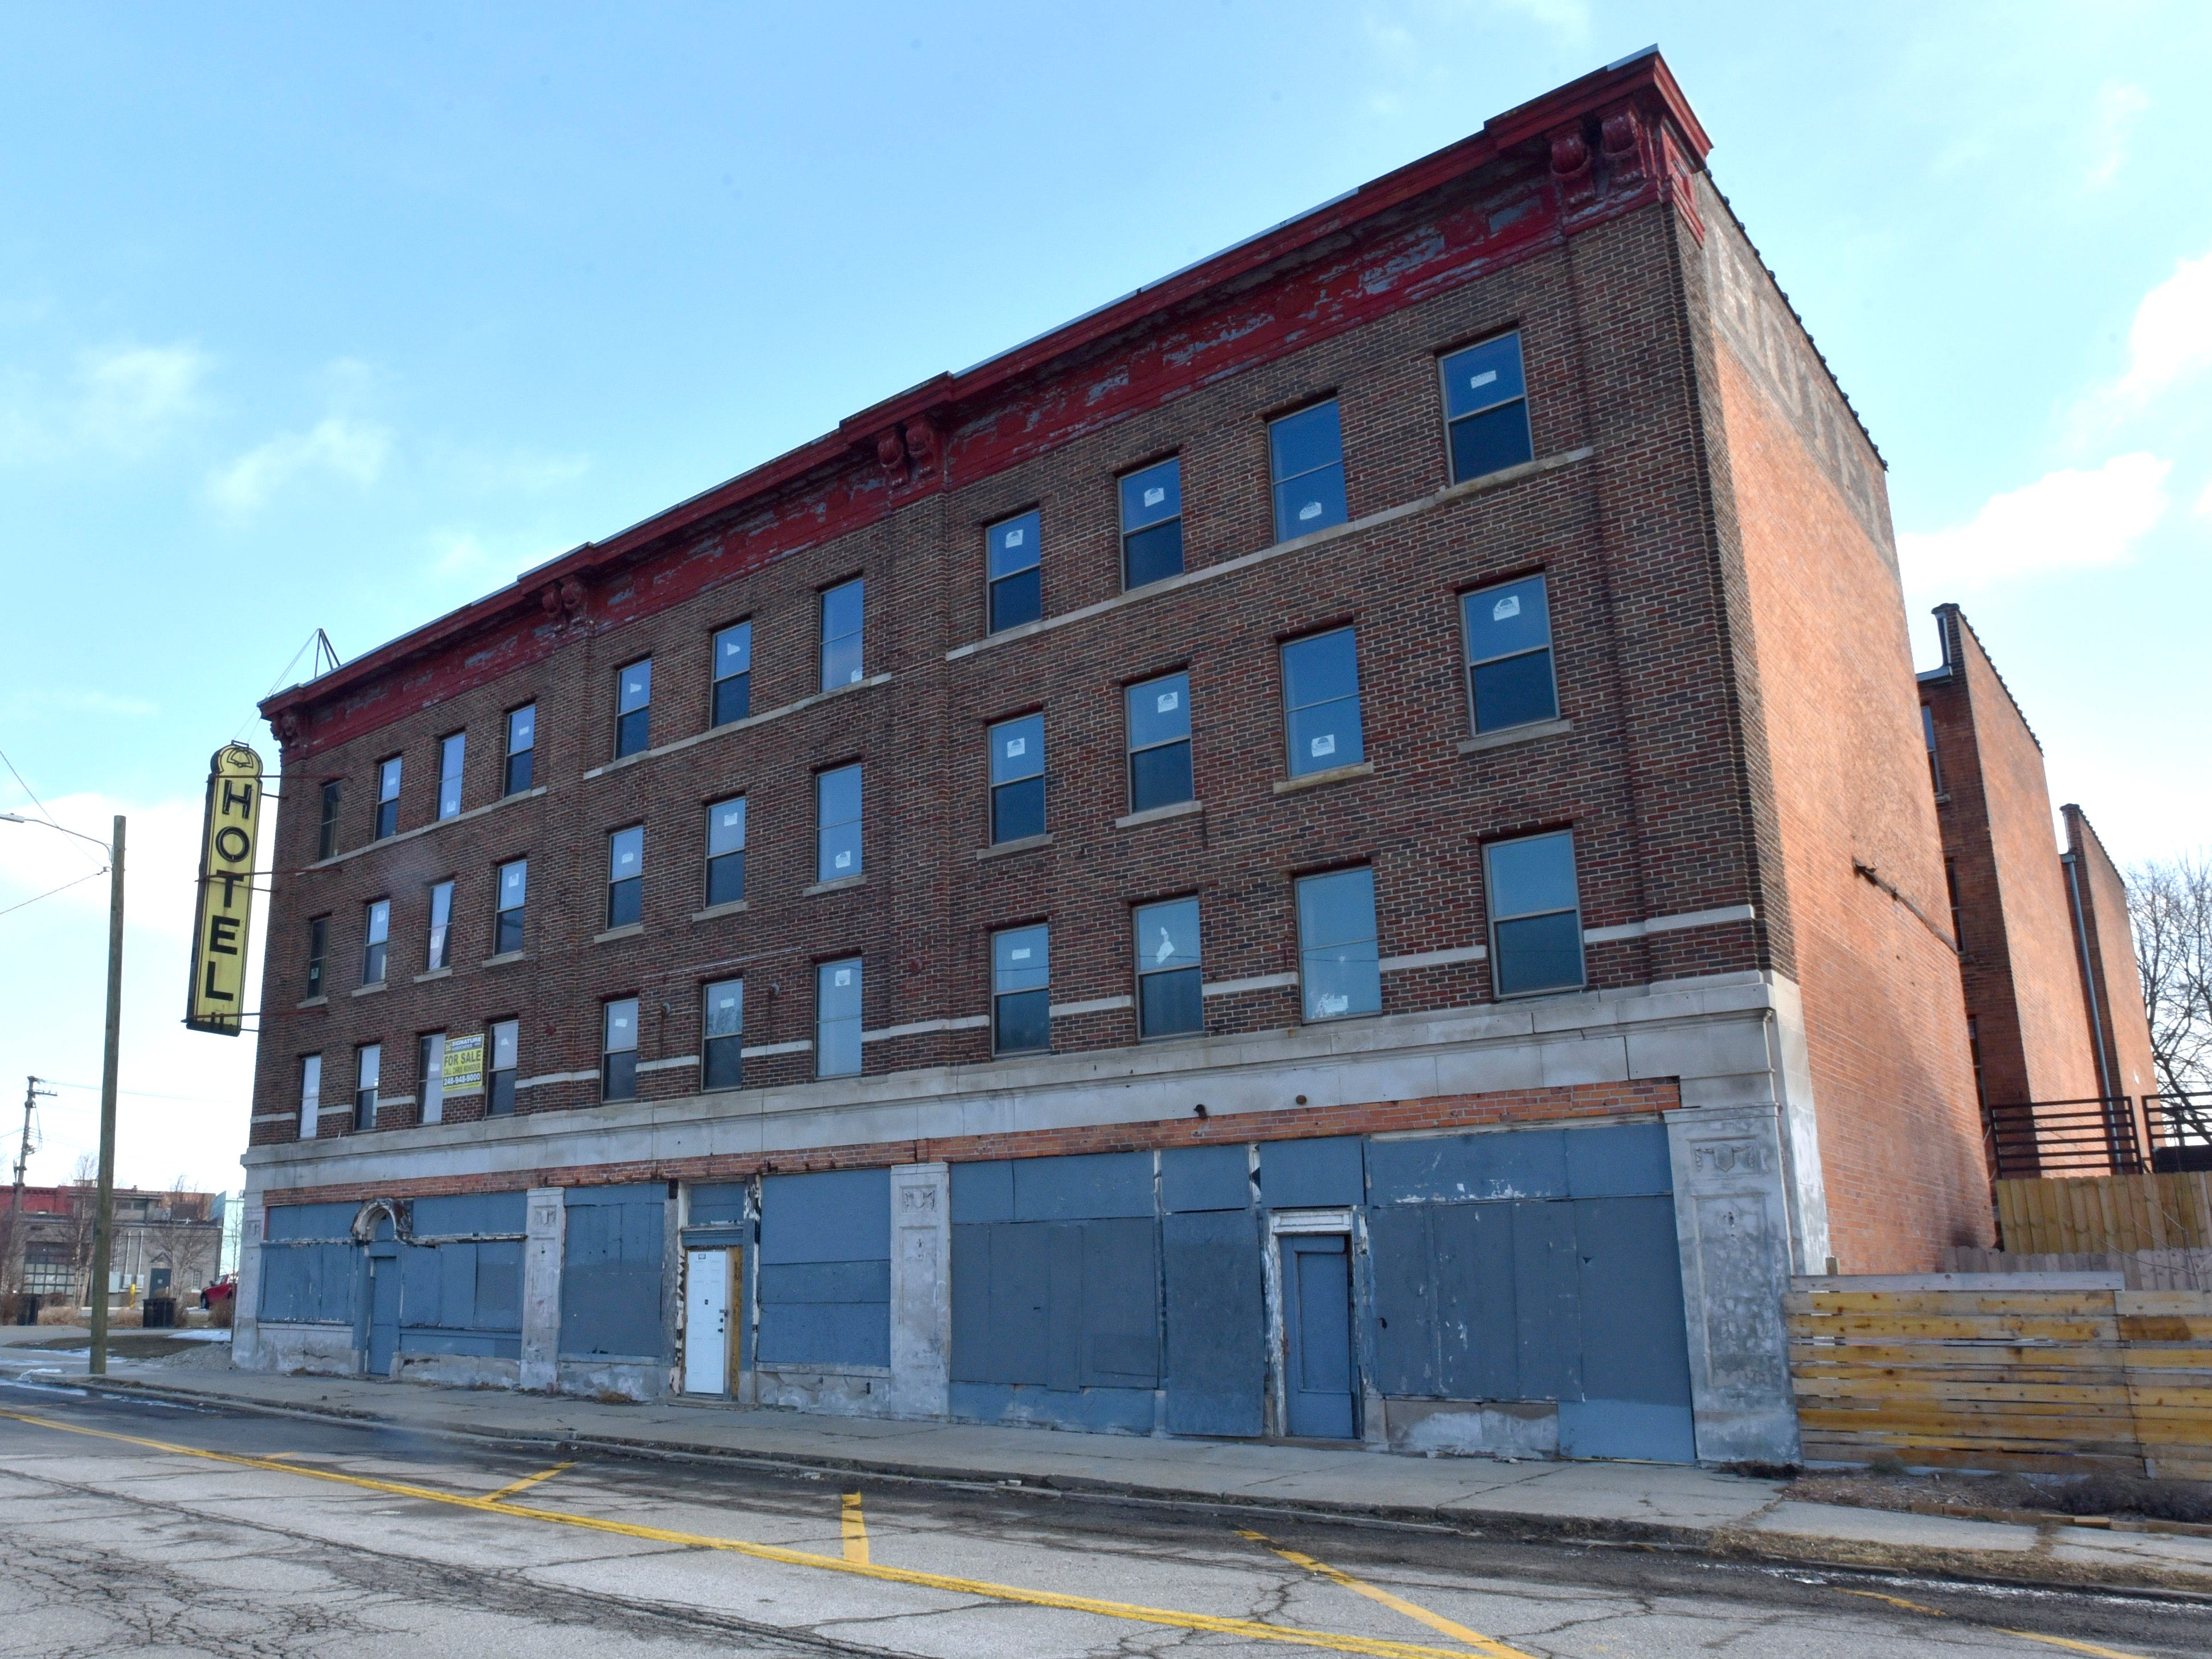 This is the former Roosevelt Hotel on 14th Street between Michigan Avenue and Dalzelle.